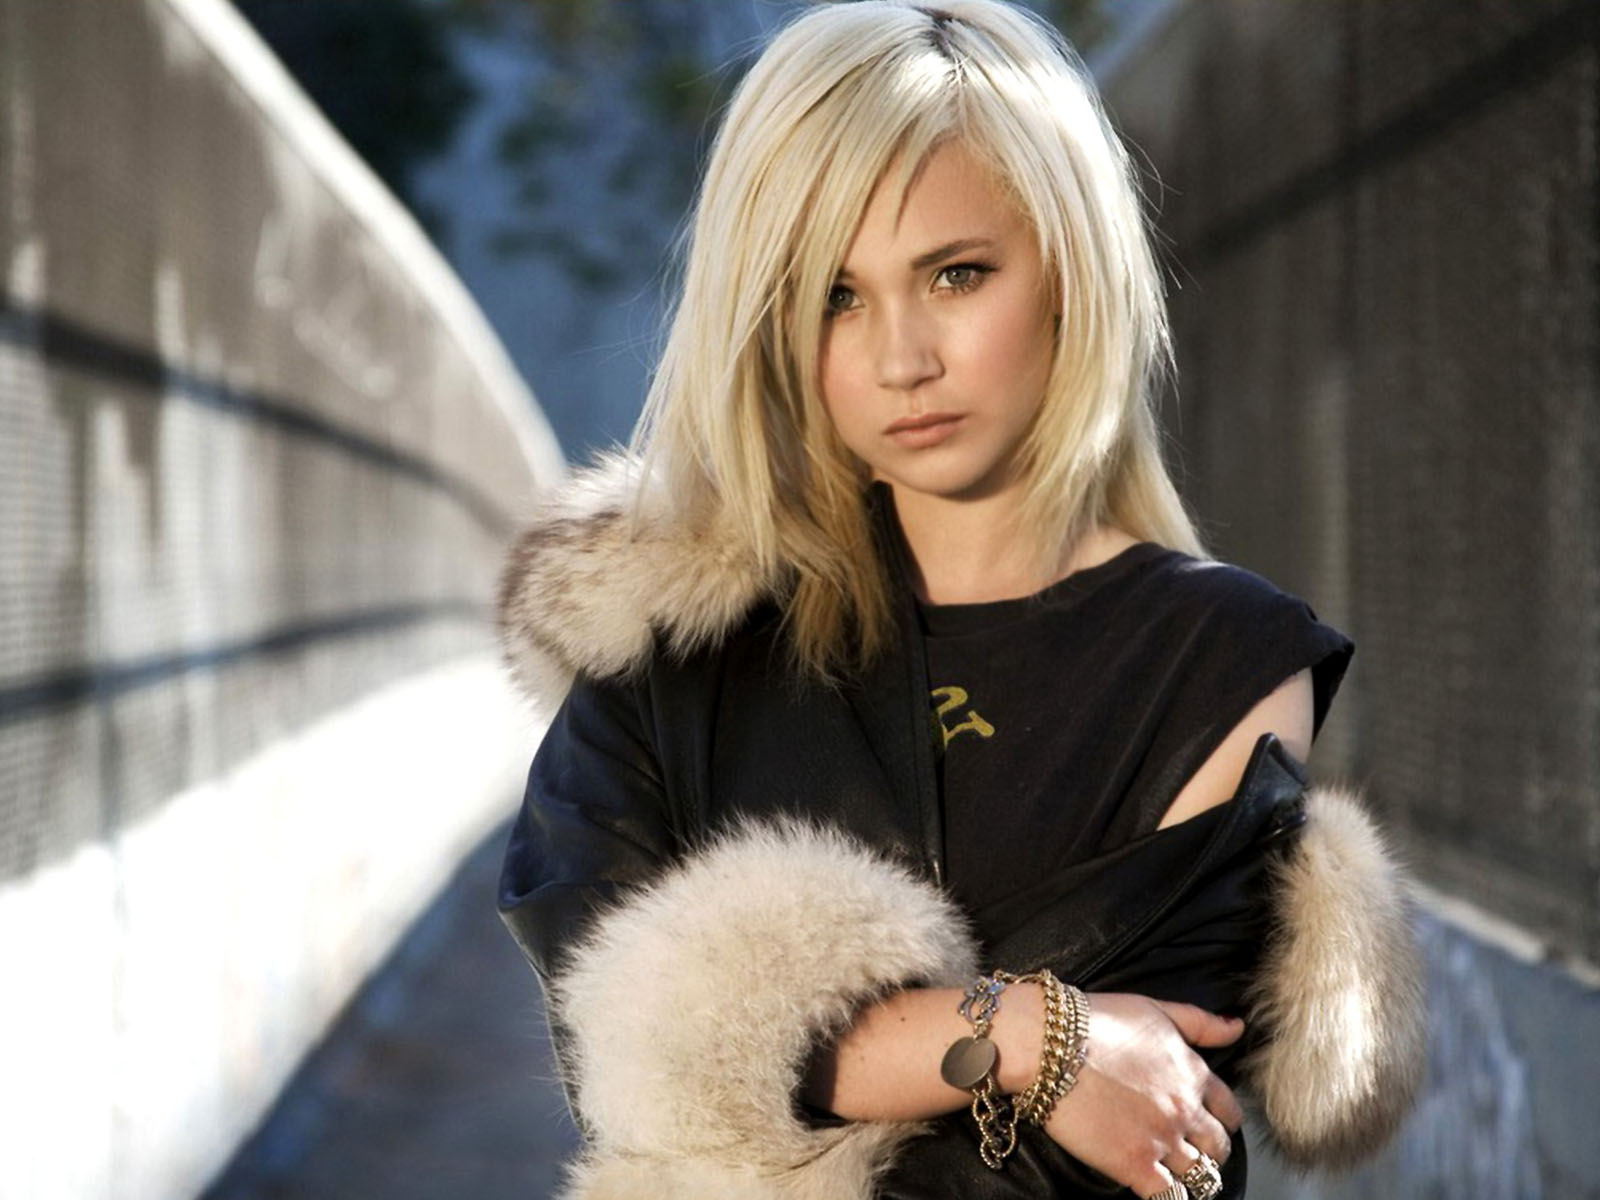 Juno Temple To Star In Jack & Diane